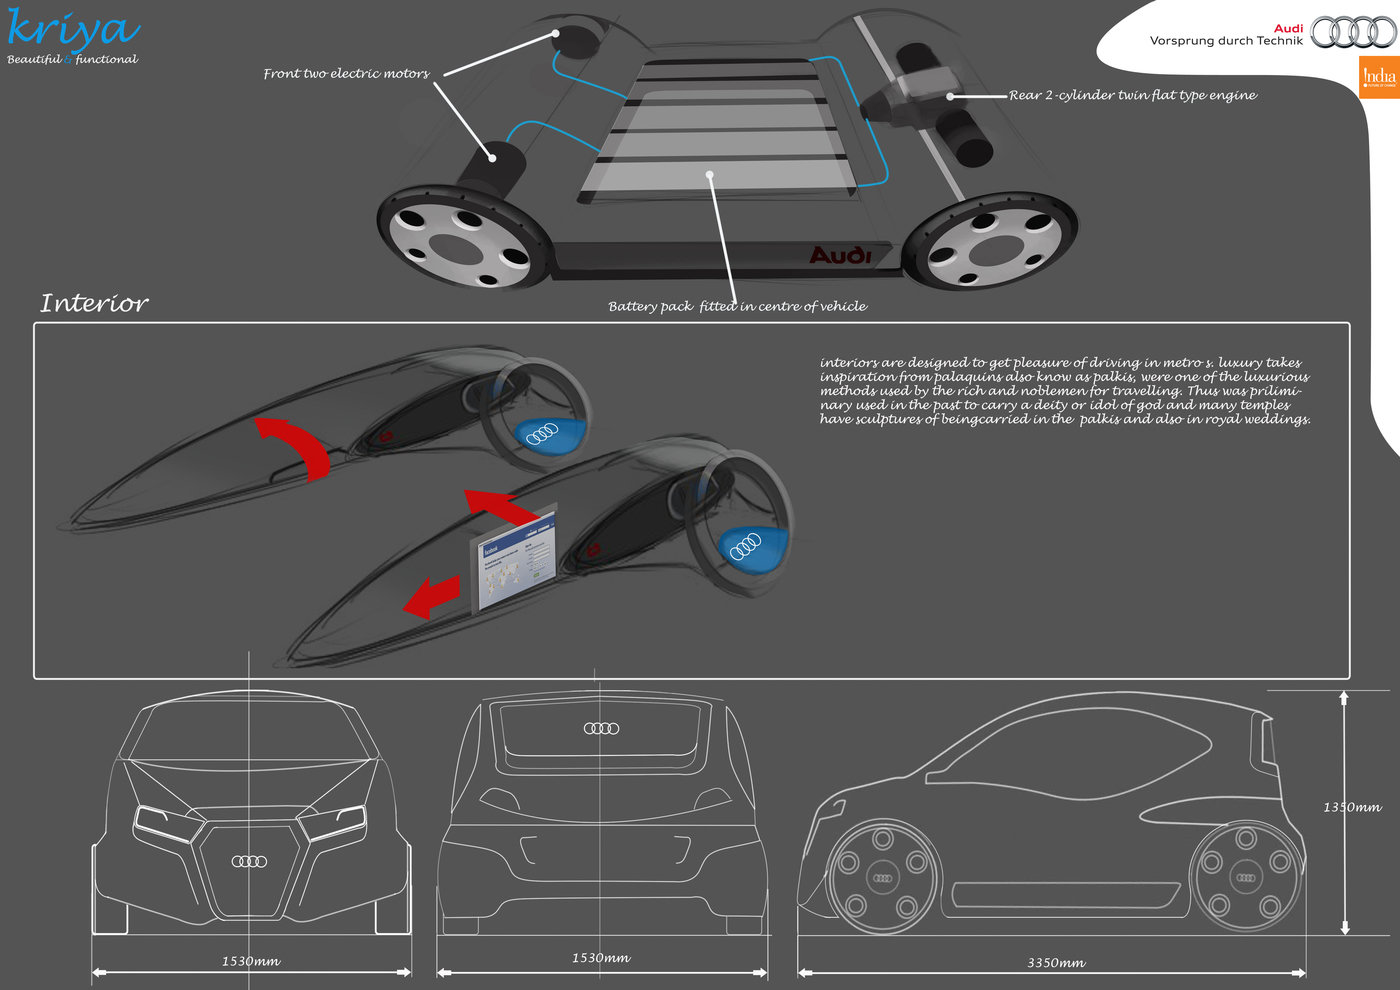 Audi Ifc Design Contest By Shantesh Angadi At 4 2 Engine Diagram Front Finalist Entry In More Simplicitymore Sensationalmore Seductive Car For India